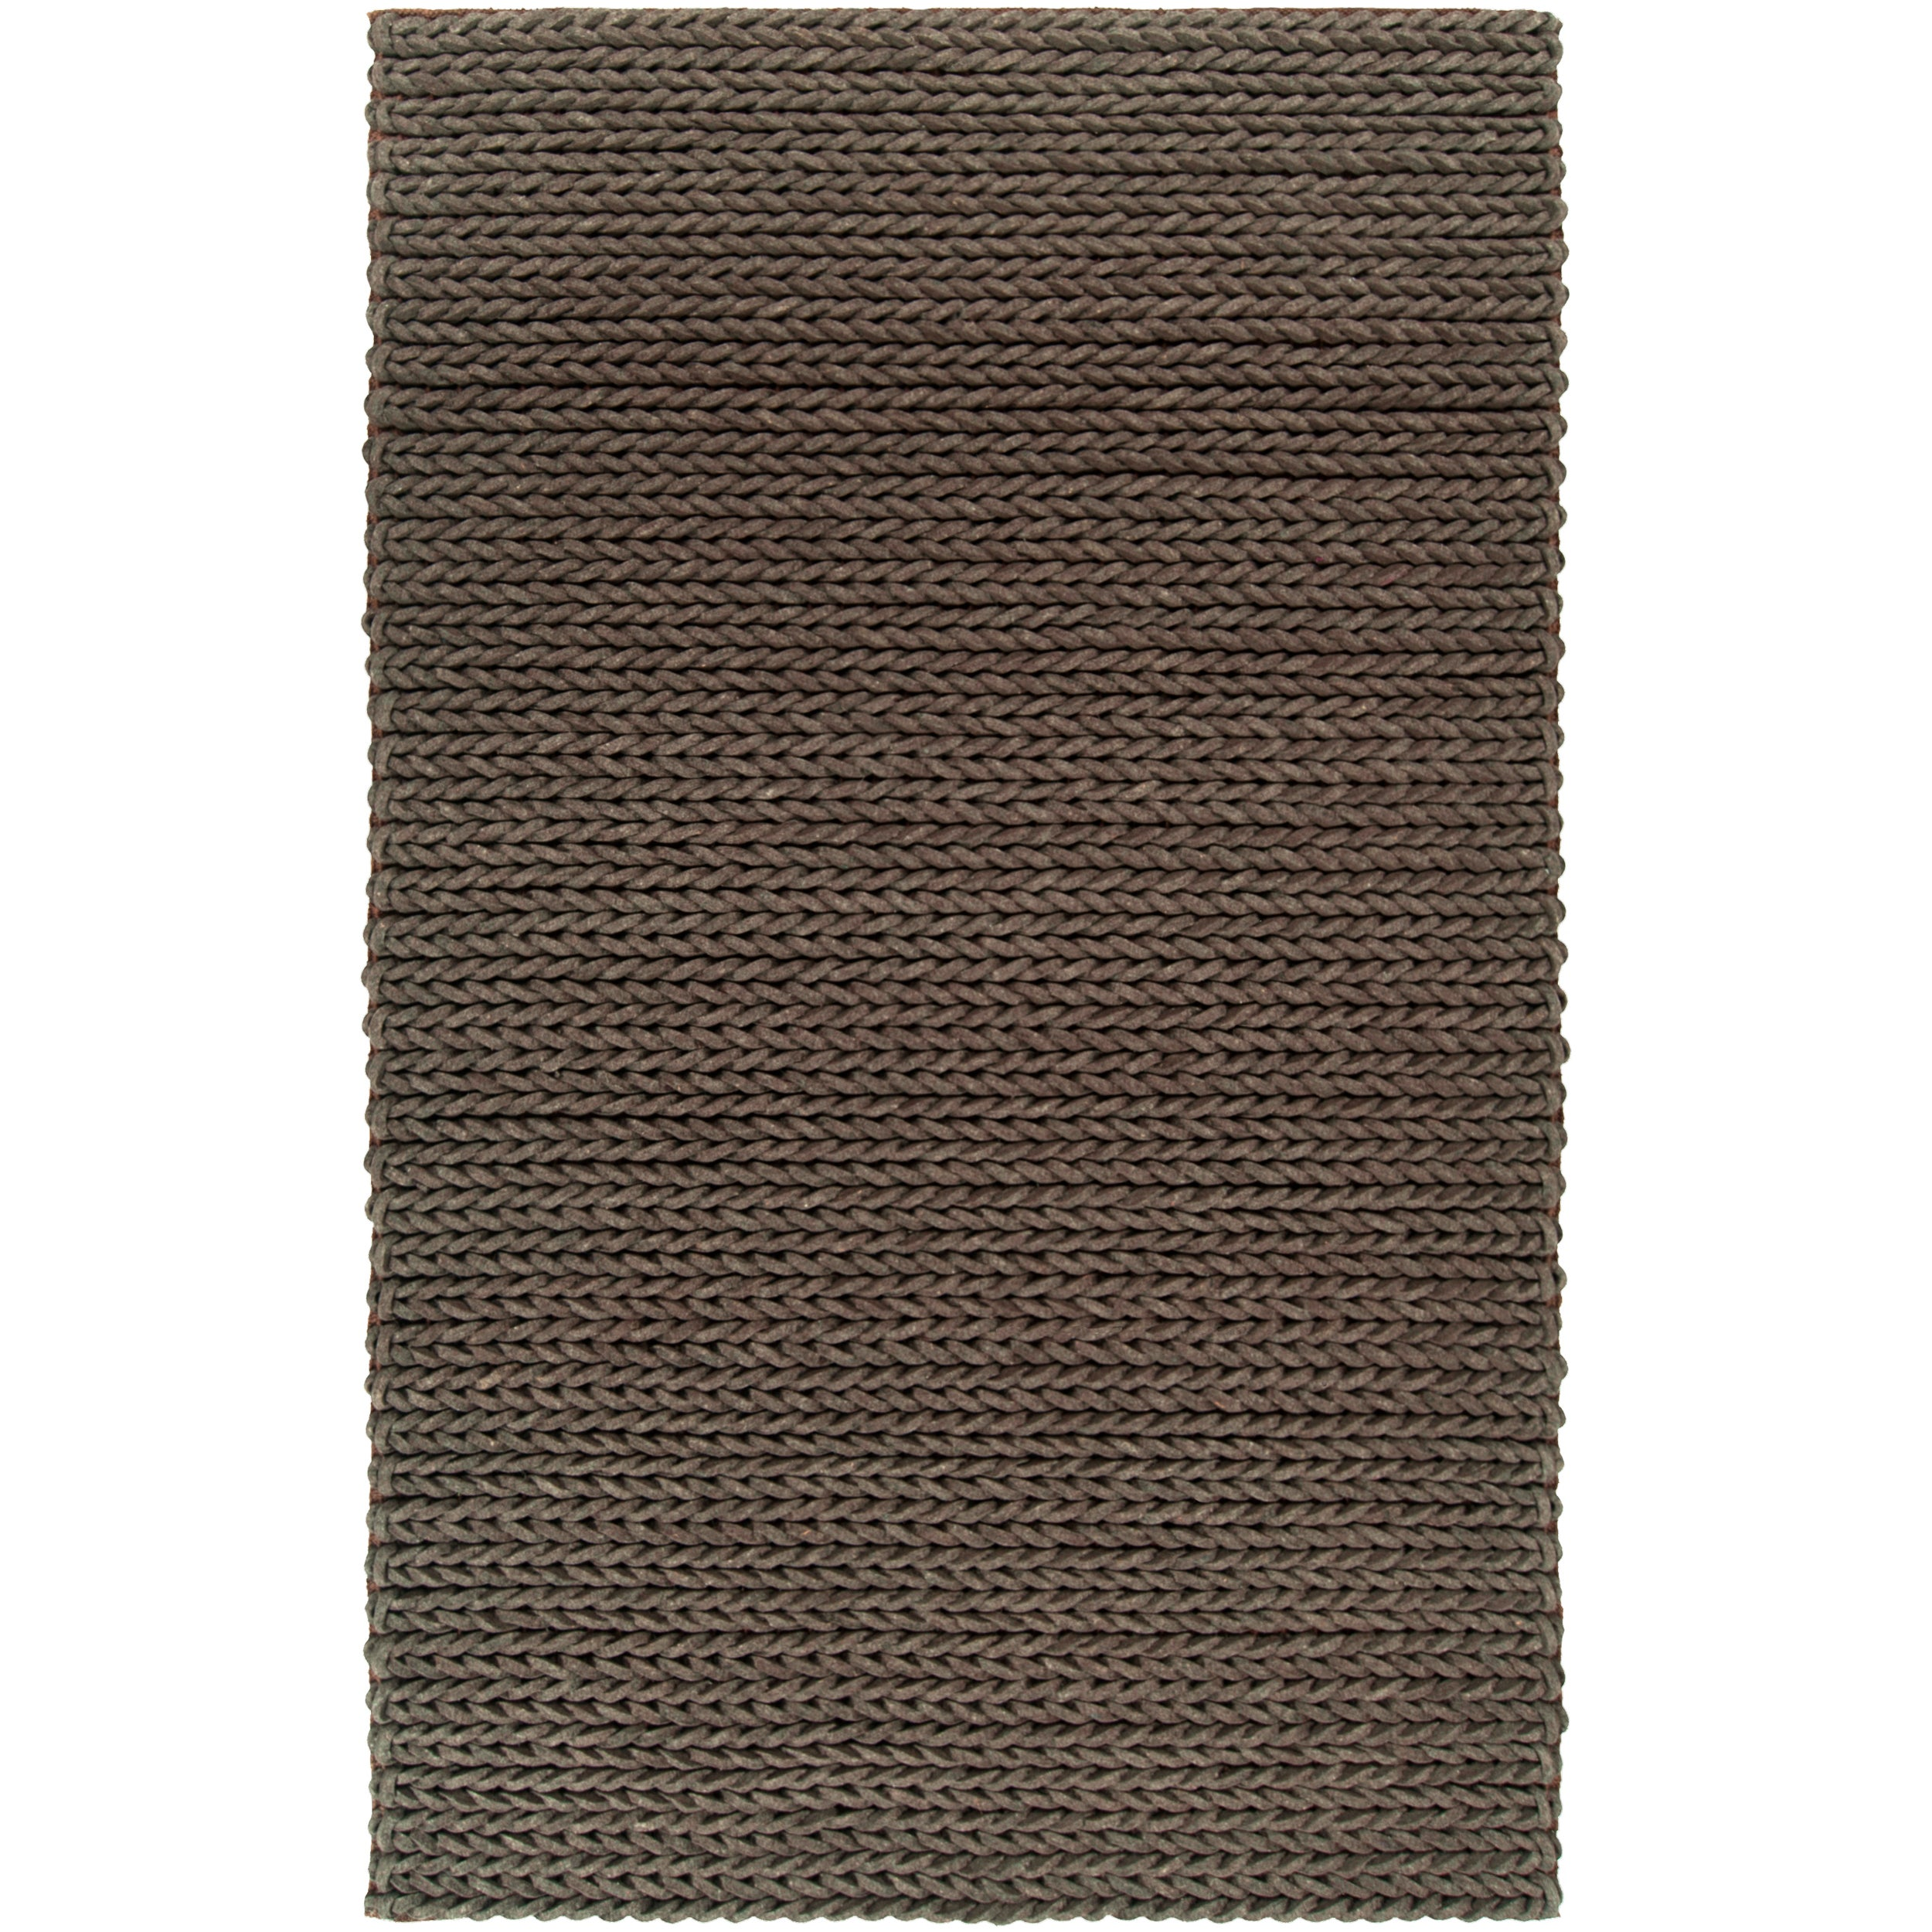 Hand-woven Arezzo Braided Texture New Zealand Wool Rug ( 8' x 11' )